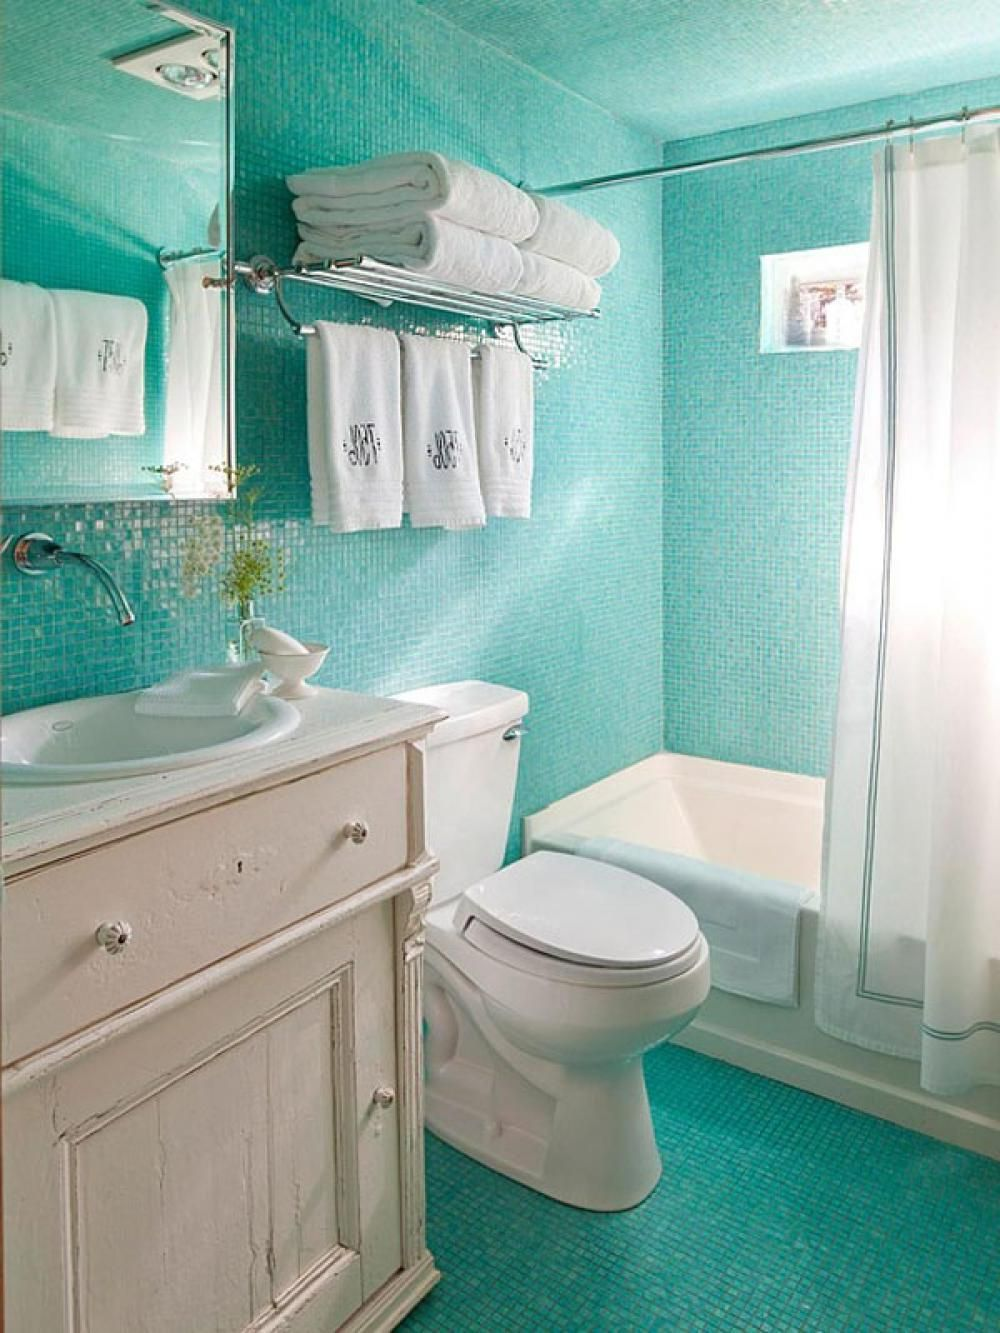 Chic Turquoise Mosaic Tiles Ocean Inspired Bathroom with White ...